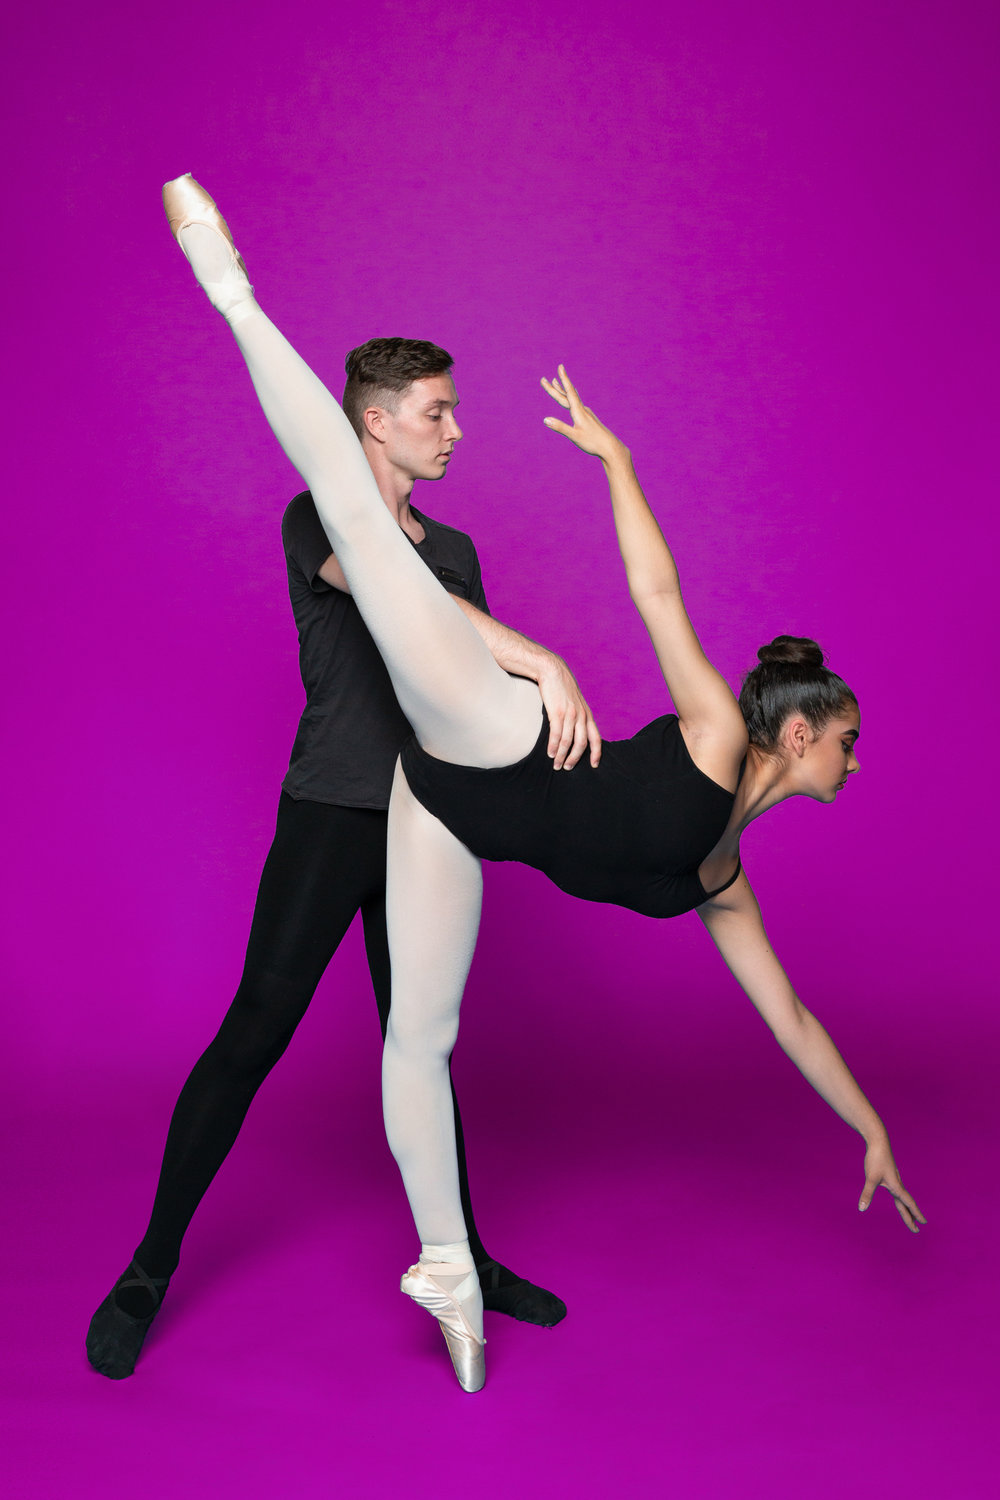 - Robinson Ballet is a premier performance company and dance school that offers education for people of all ages, abilities and aspirations and engages the community through dance.